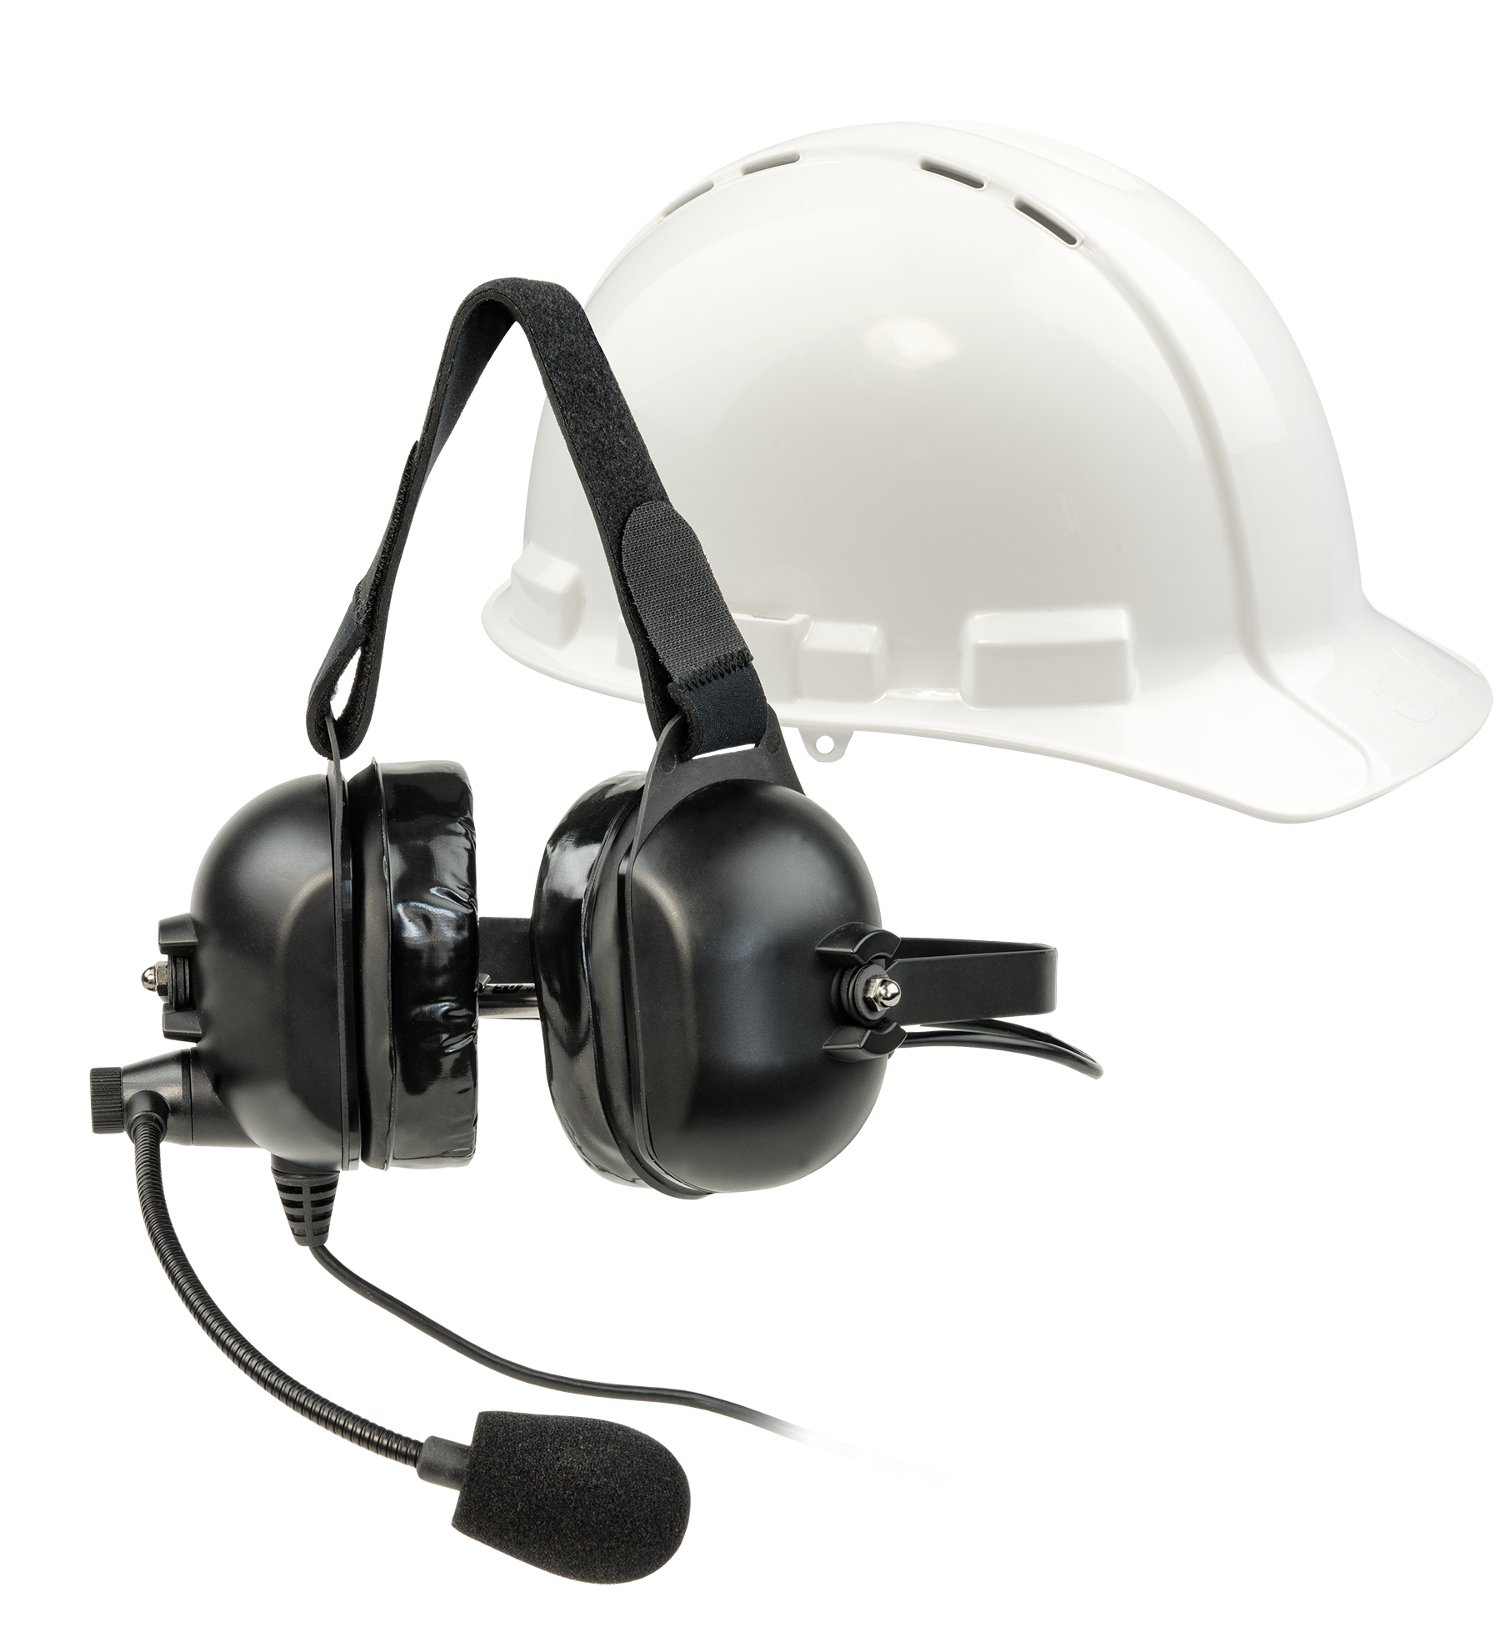 Headset 5, Dual Over-Ear Headset with Boom Microphone